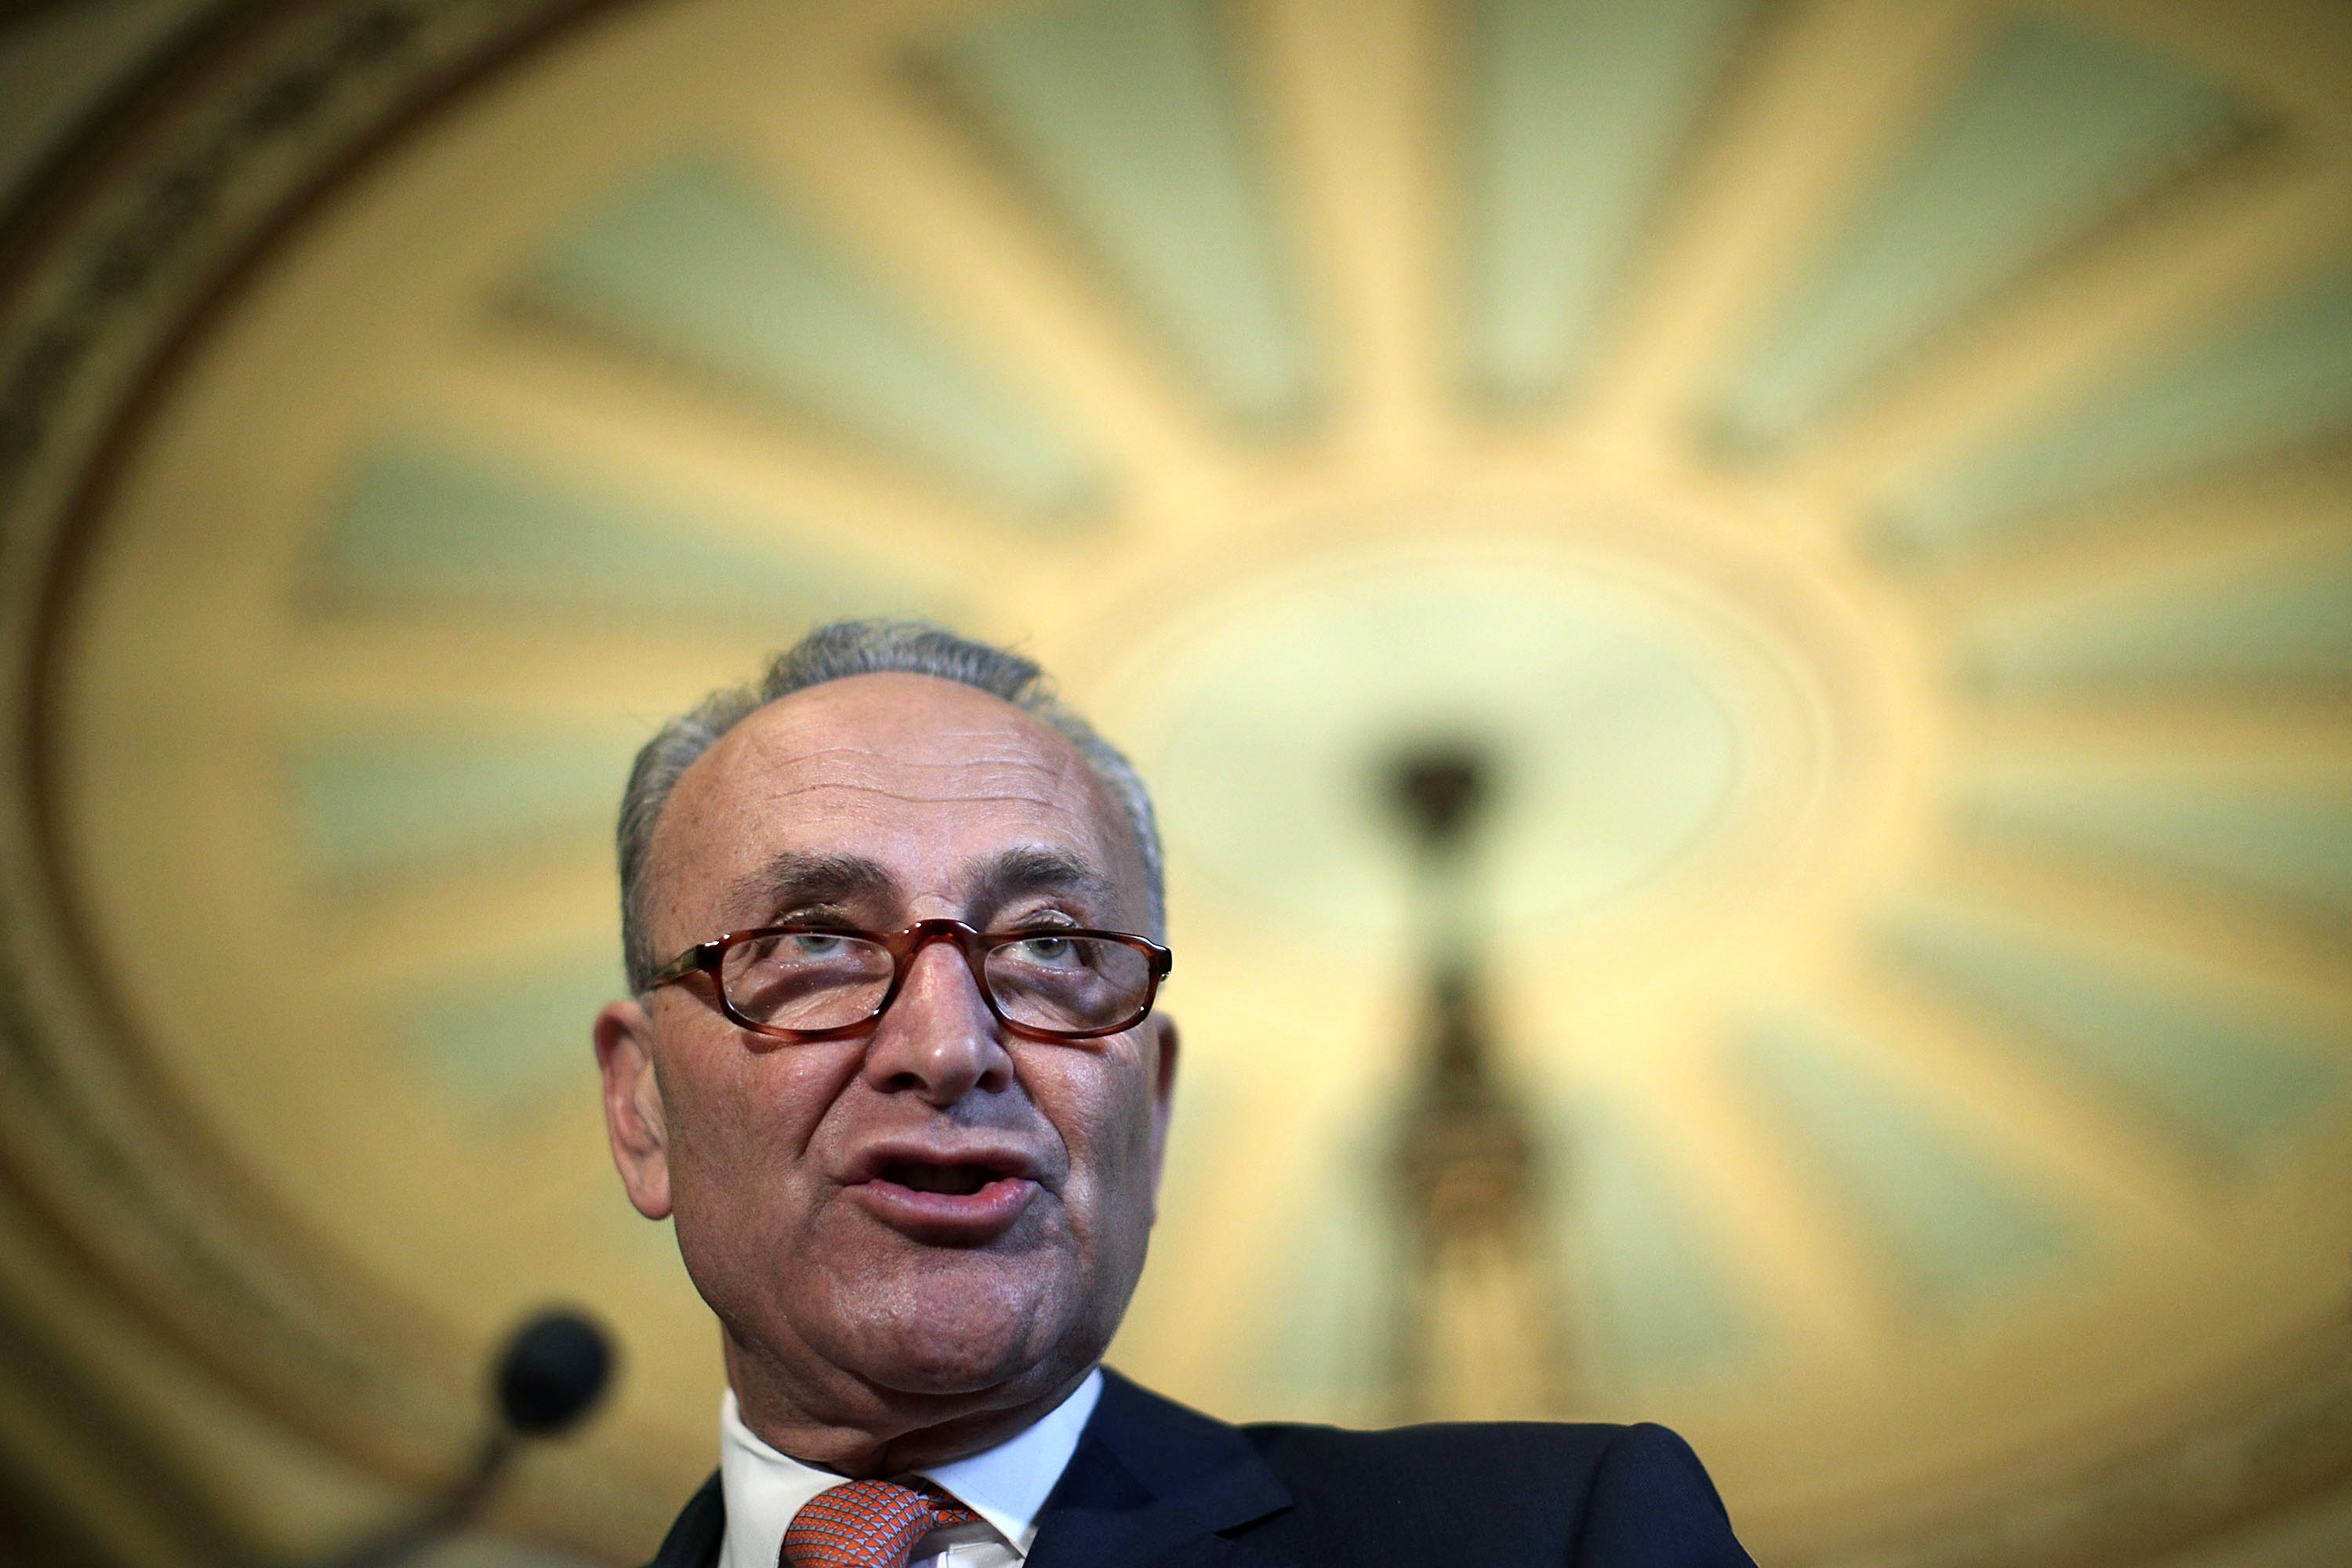 WASHINGTON, DC - JULY 11:  U.S. Senate Minority Leader Sen. Charles Schumer (D-NY) speaks during a news briefing after the weekly Senate Democratic Policy Luncheon July 11, 2017 at the Capitol in Washington, DC. Sen. Schumer discussed various topics including Senate's delaying its recess to the third week of August.  (Photo by Alex Wong/Getty Images)